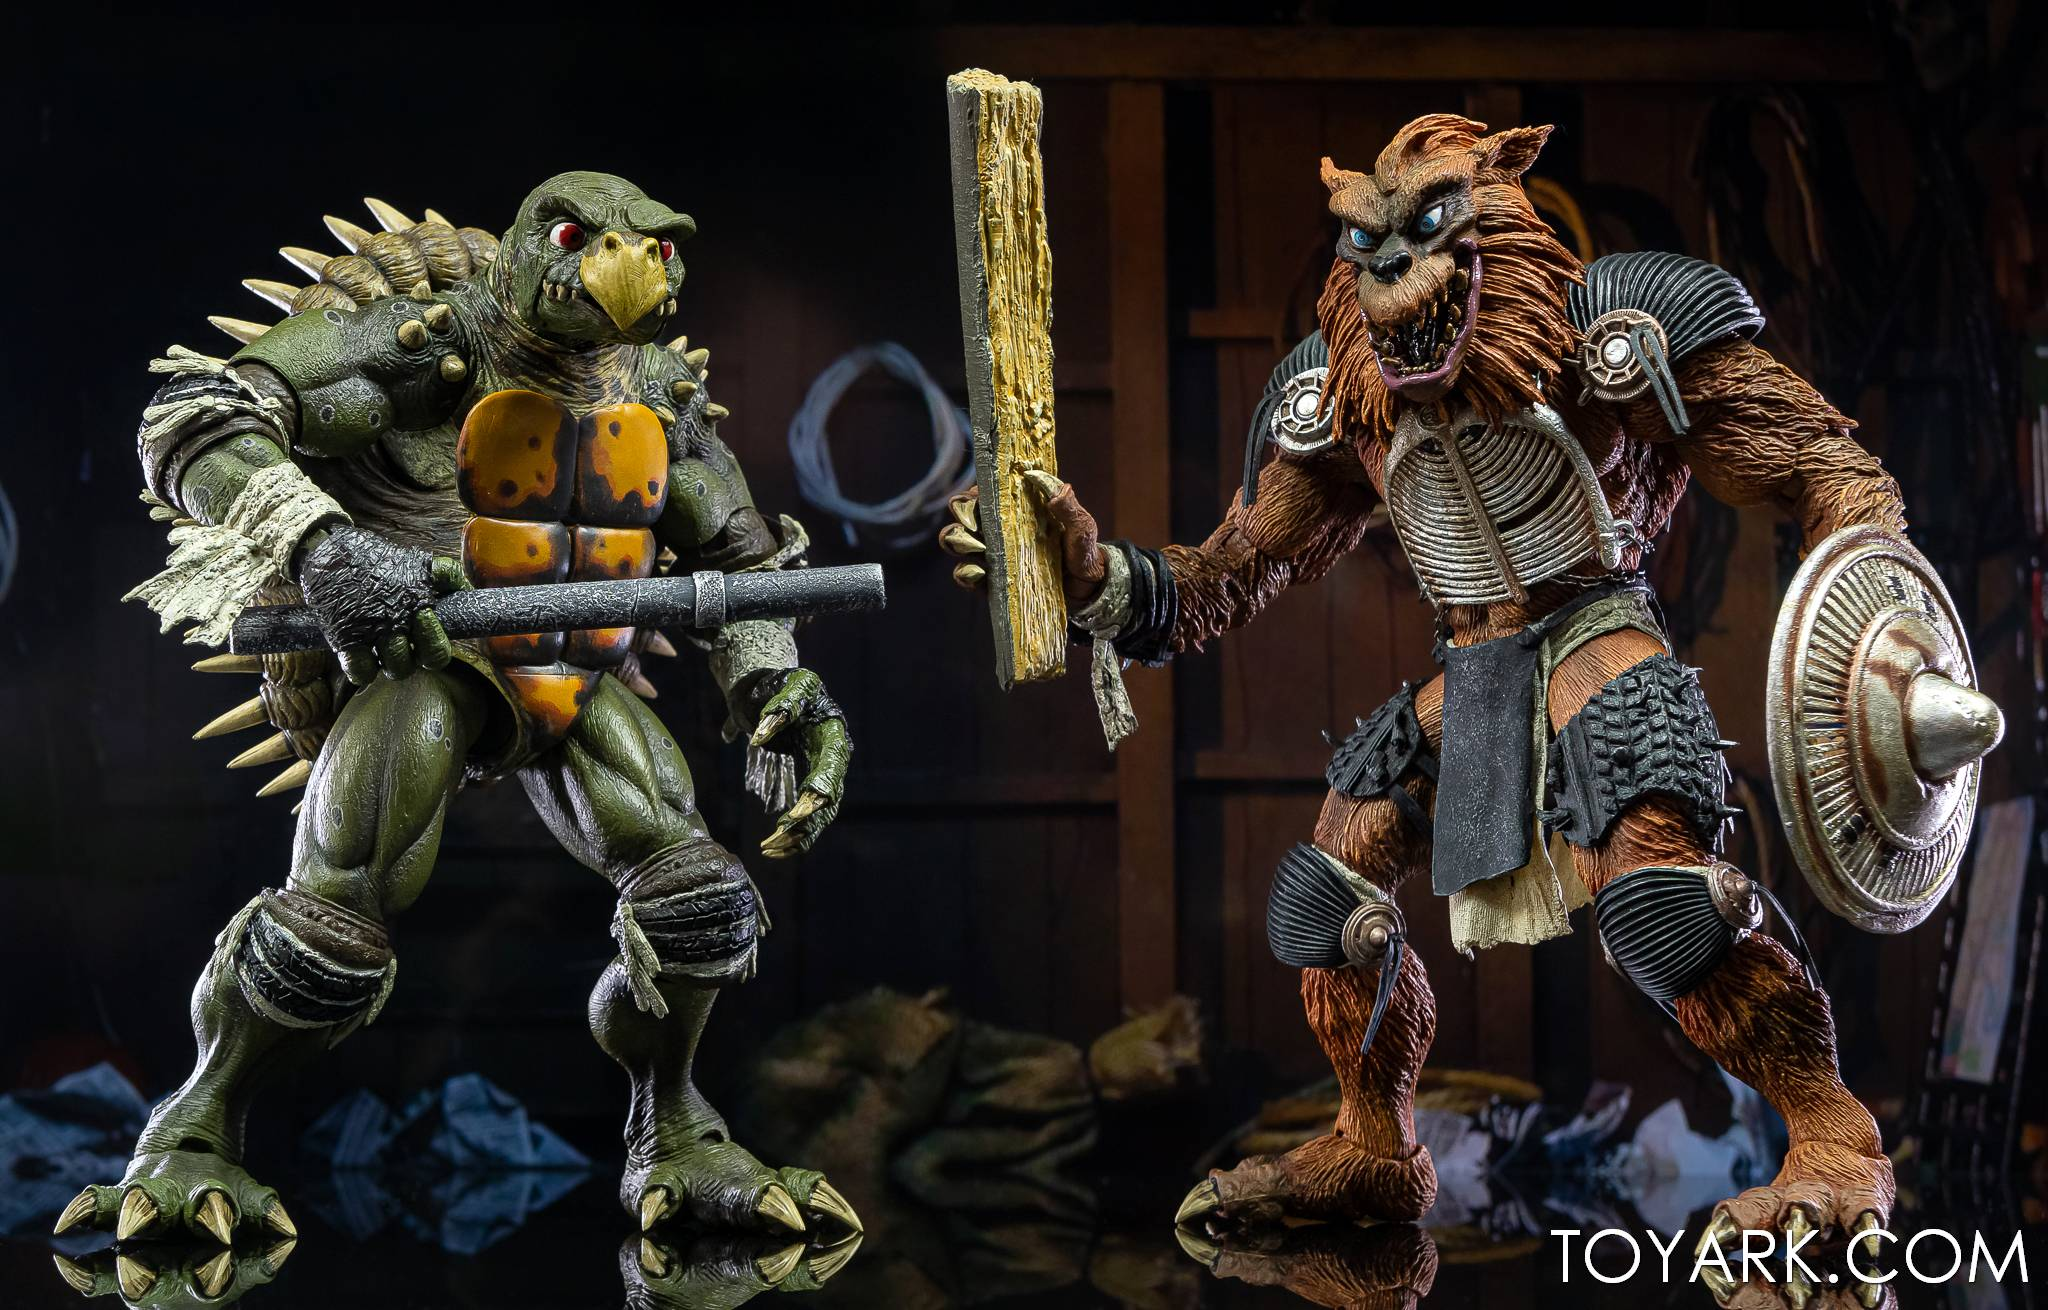 https://news.toyark.com/wp-content/uploads/sites/4/2021/03/NECA-Tokka-and-Rahzar-TMNT-II-019.jpg